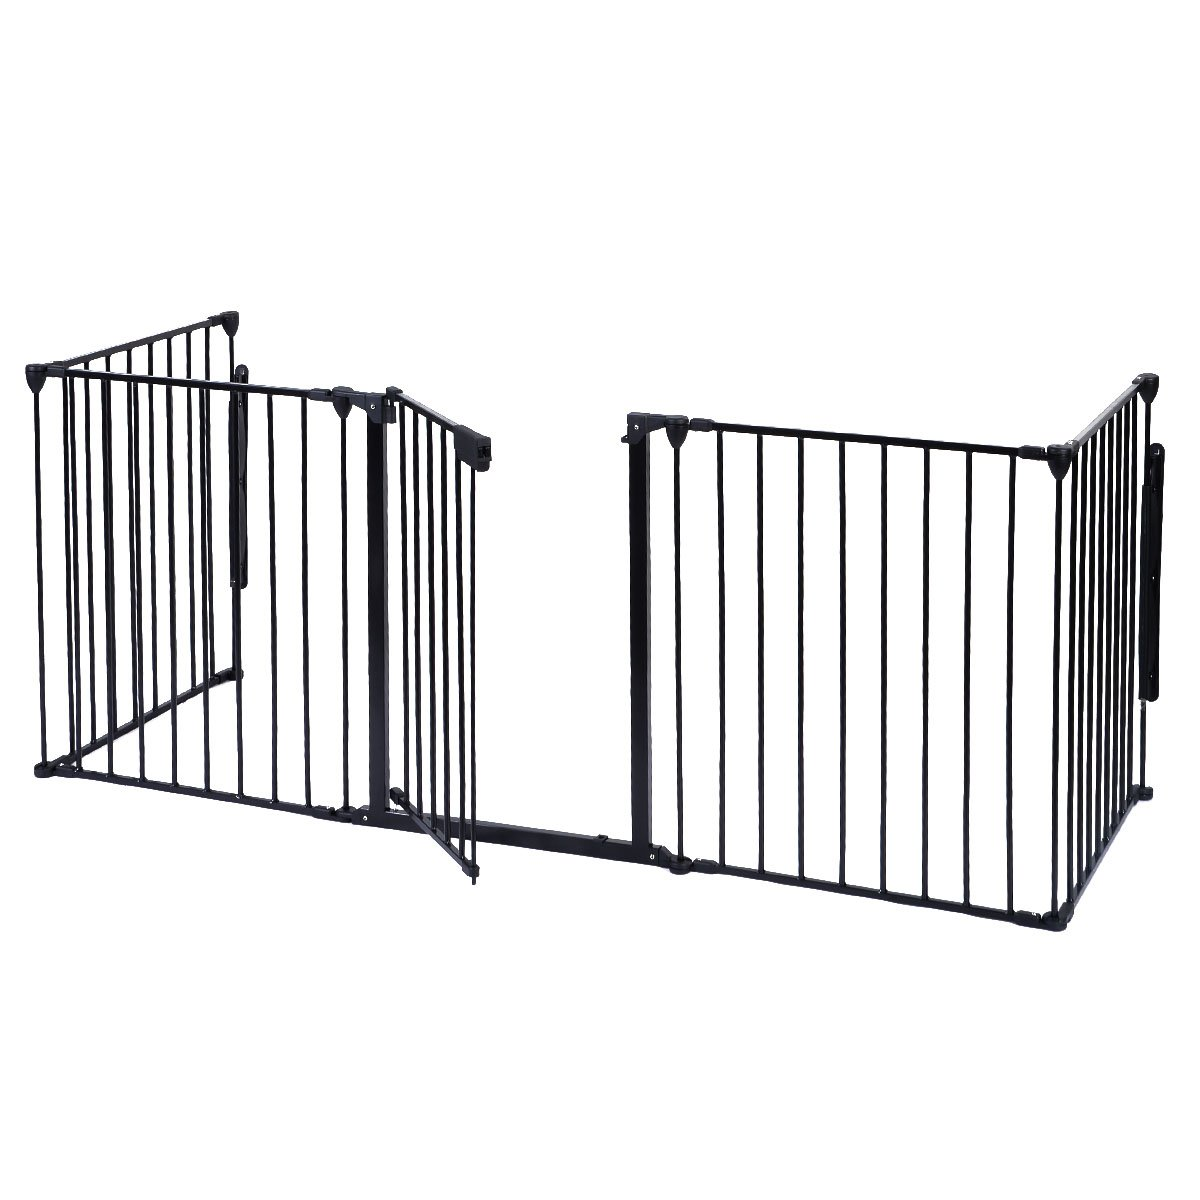 Costzon Baby Safety Gate, 120 Inch Length Fireplace Fence, BBQ Metal Fire Gate, Pet Isolation Fence with Walk-Through Door, Hardware Mount or Freestanding Hearth Gate